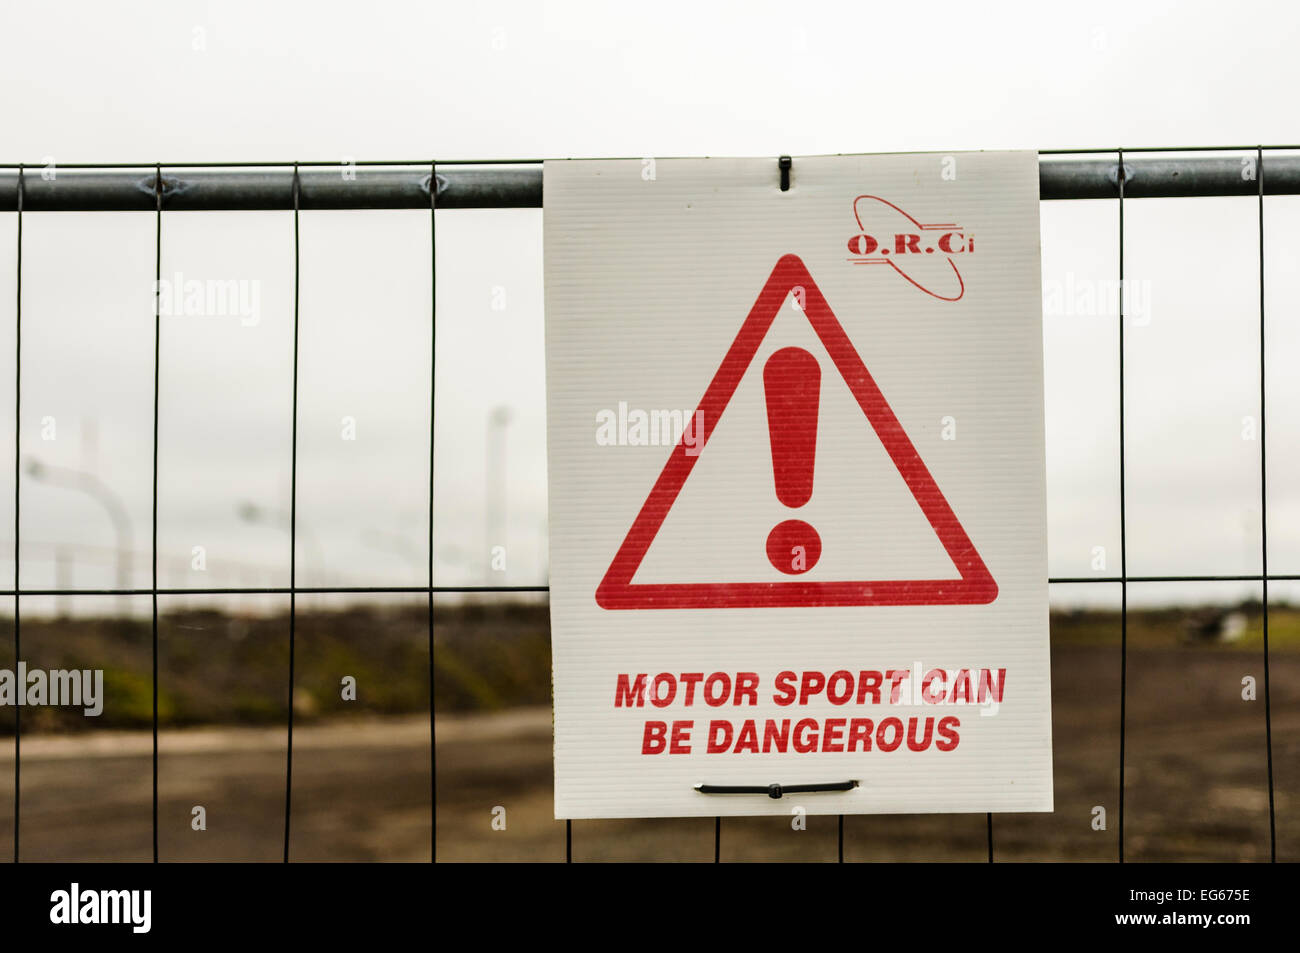 Sign at a race track advising the public that motor sport can be dangerous - Stock Image